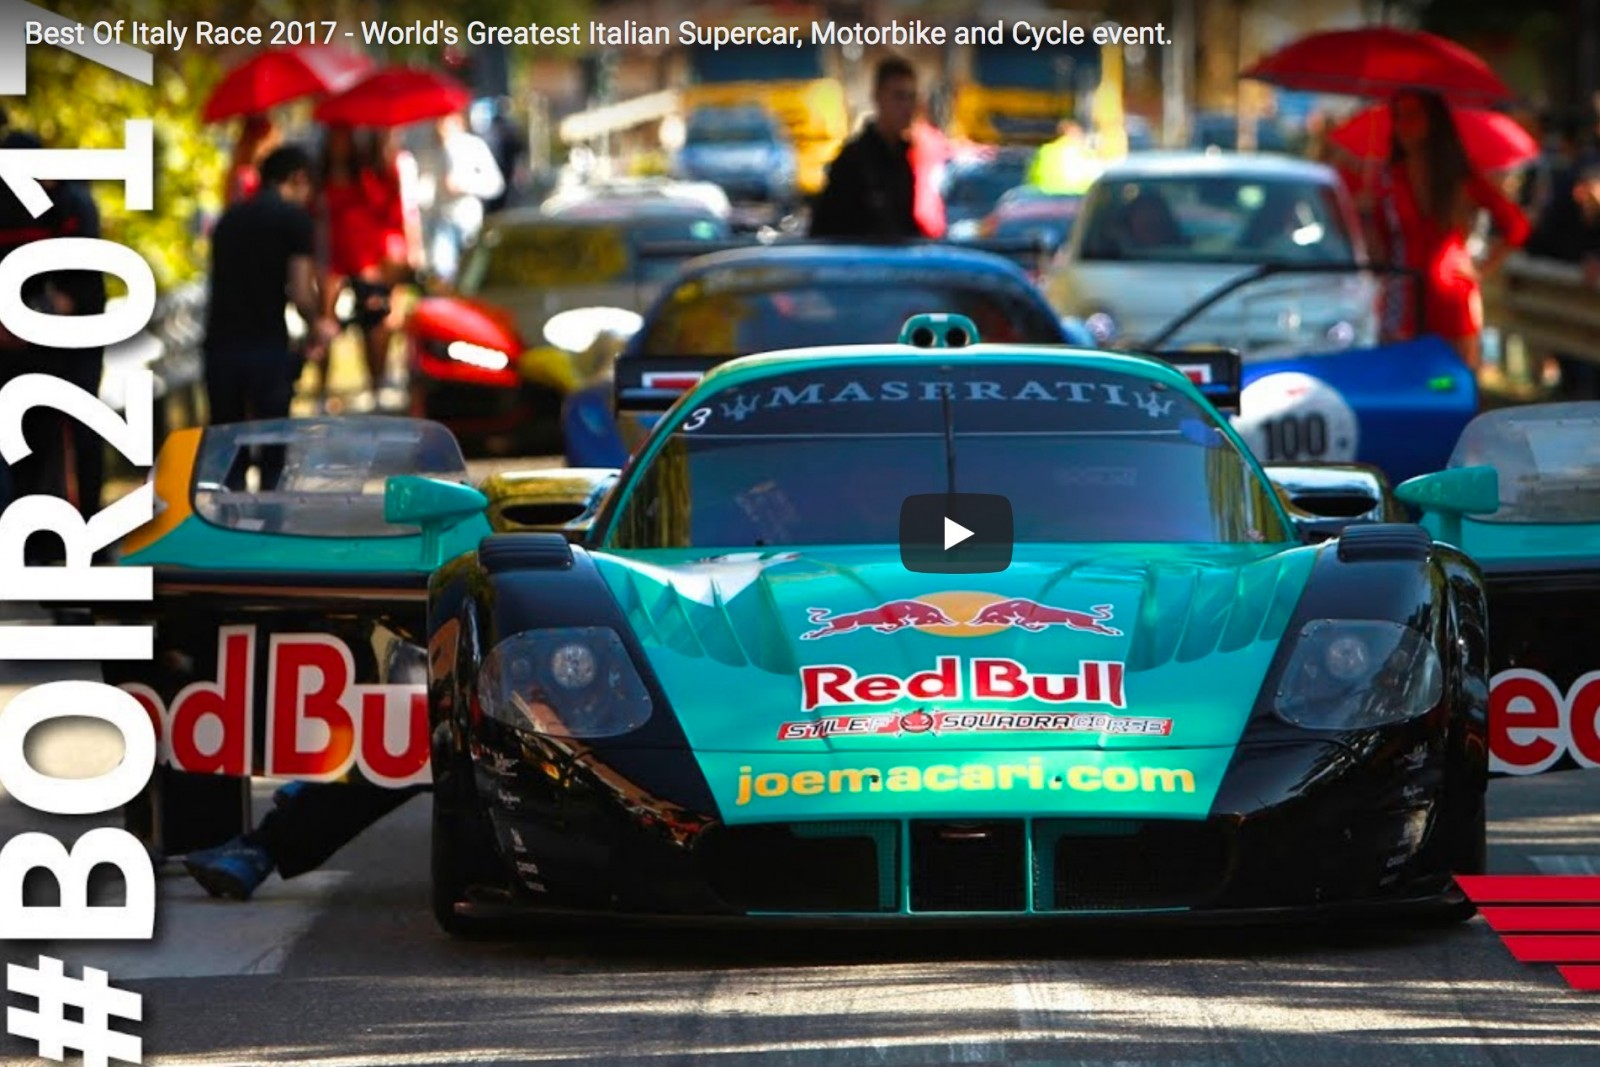 Video – Best of Italy Festival